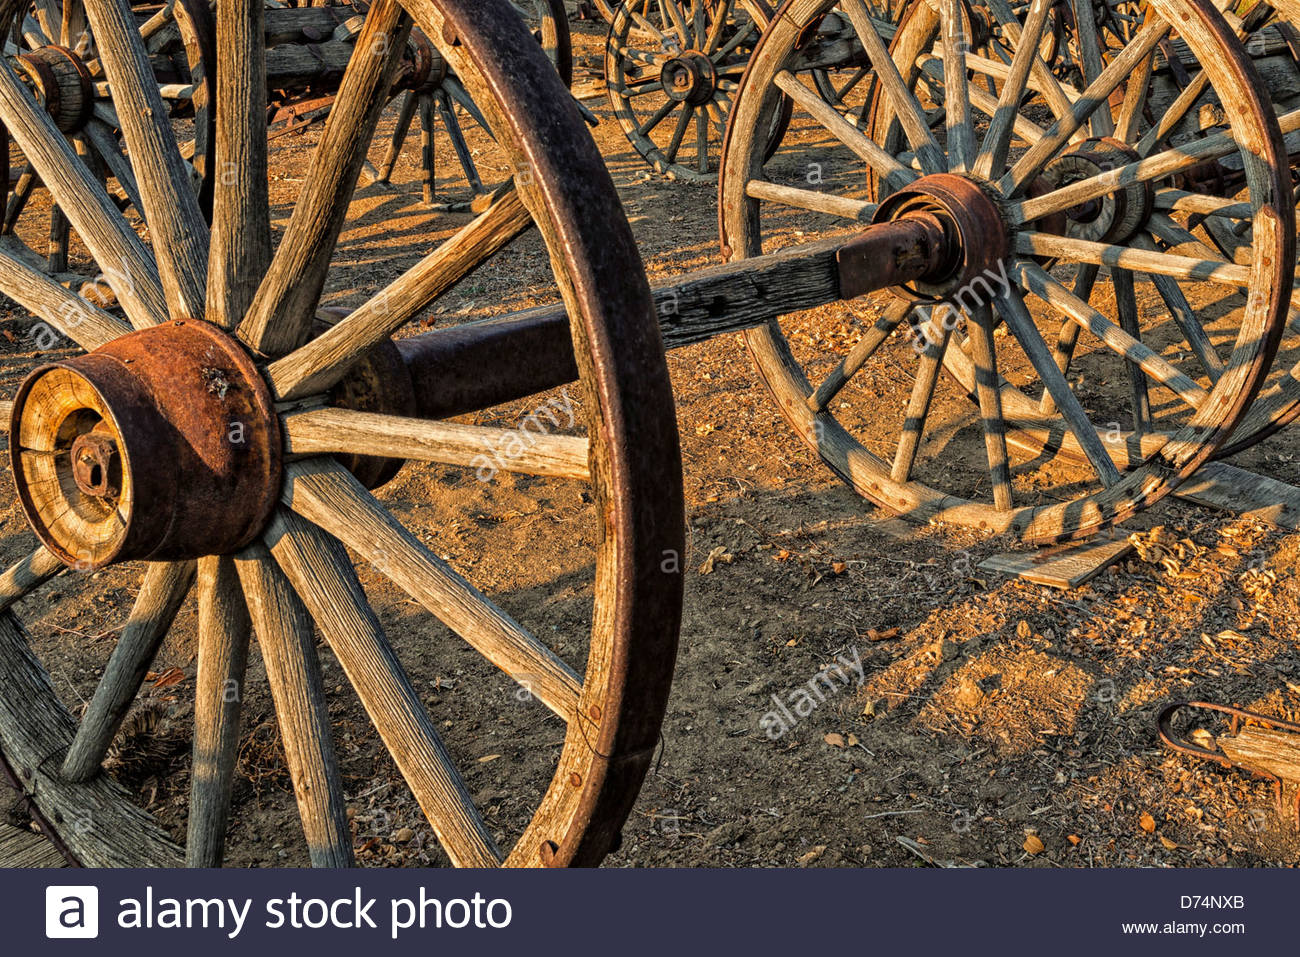 Pieces Of Old Wooden Wagons From Old West, Including